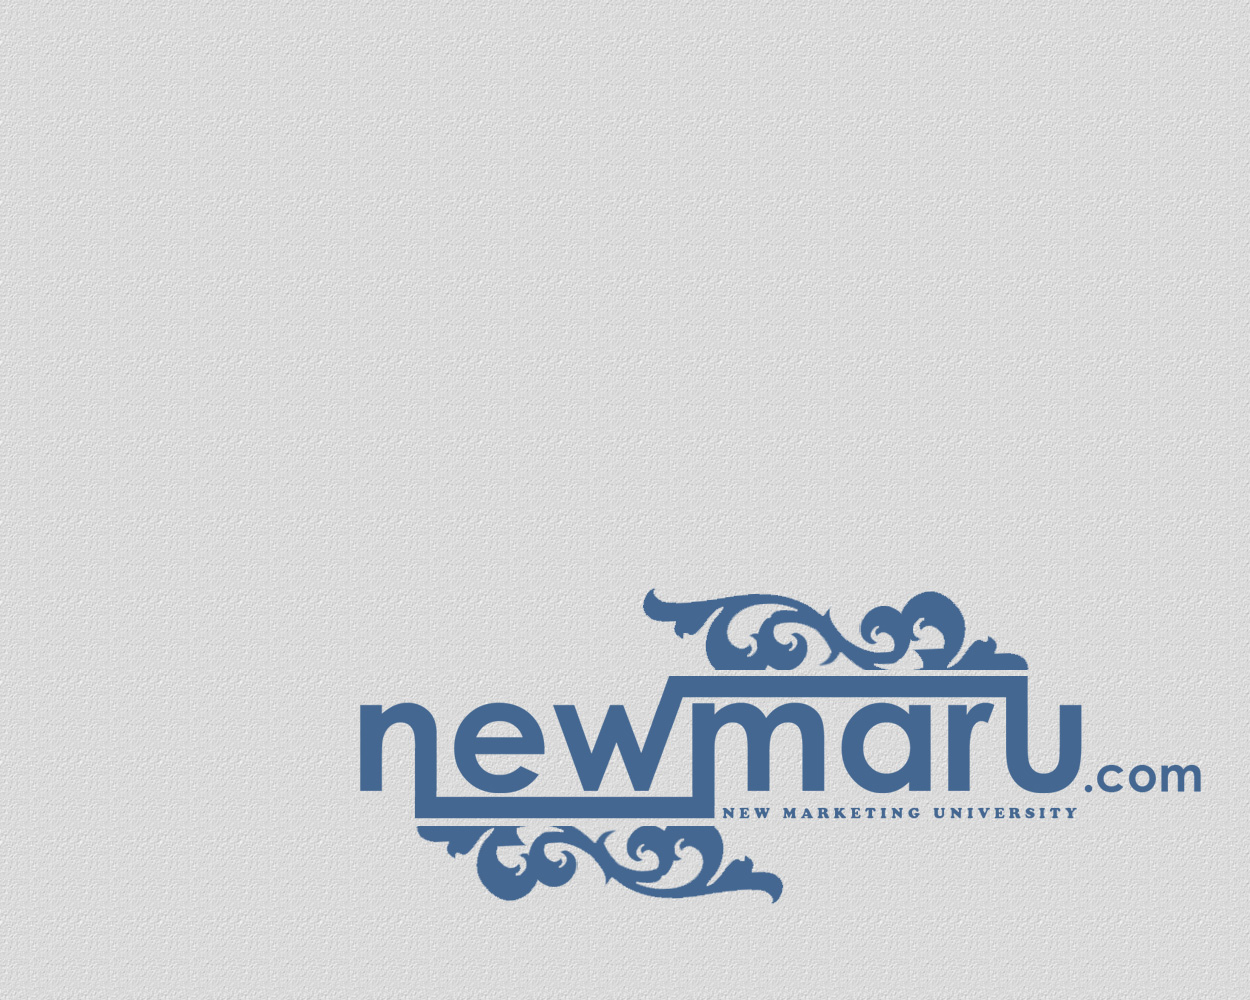 Logo Design by smokegroovechill - Entry No. 5 in the Logo Design Contest NewMarU.com (New Marketing University).